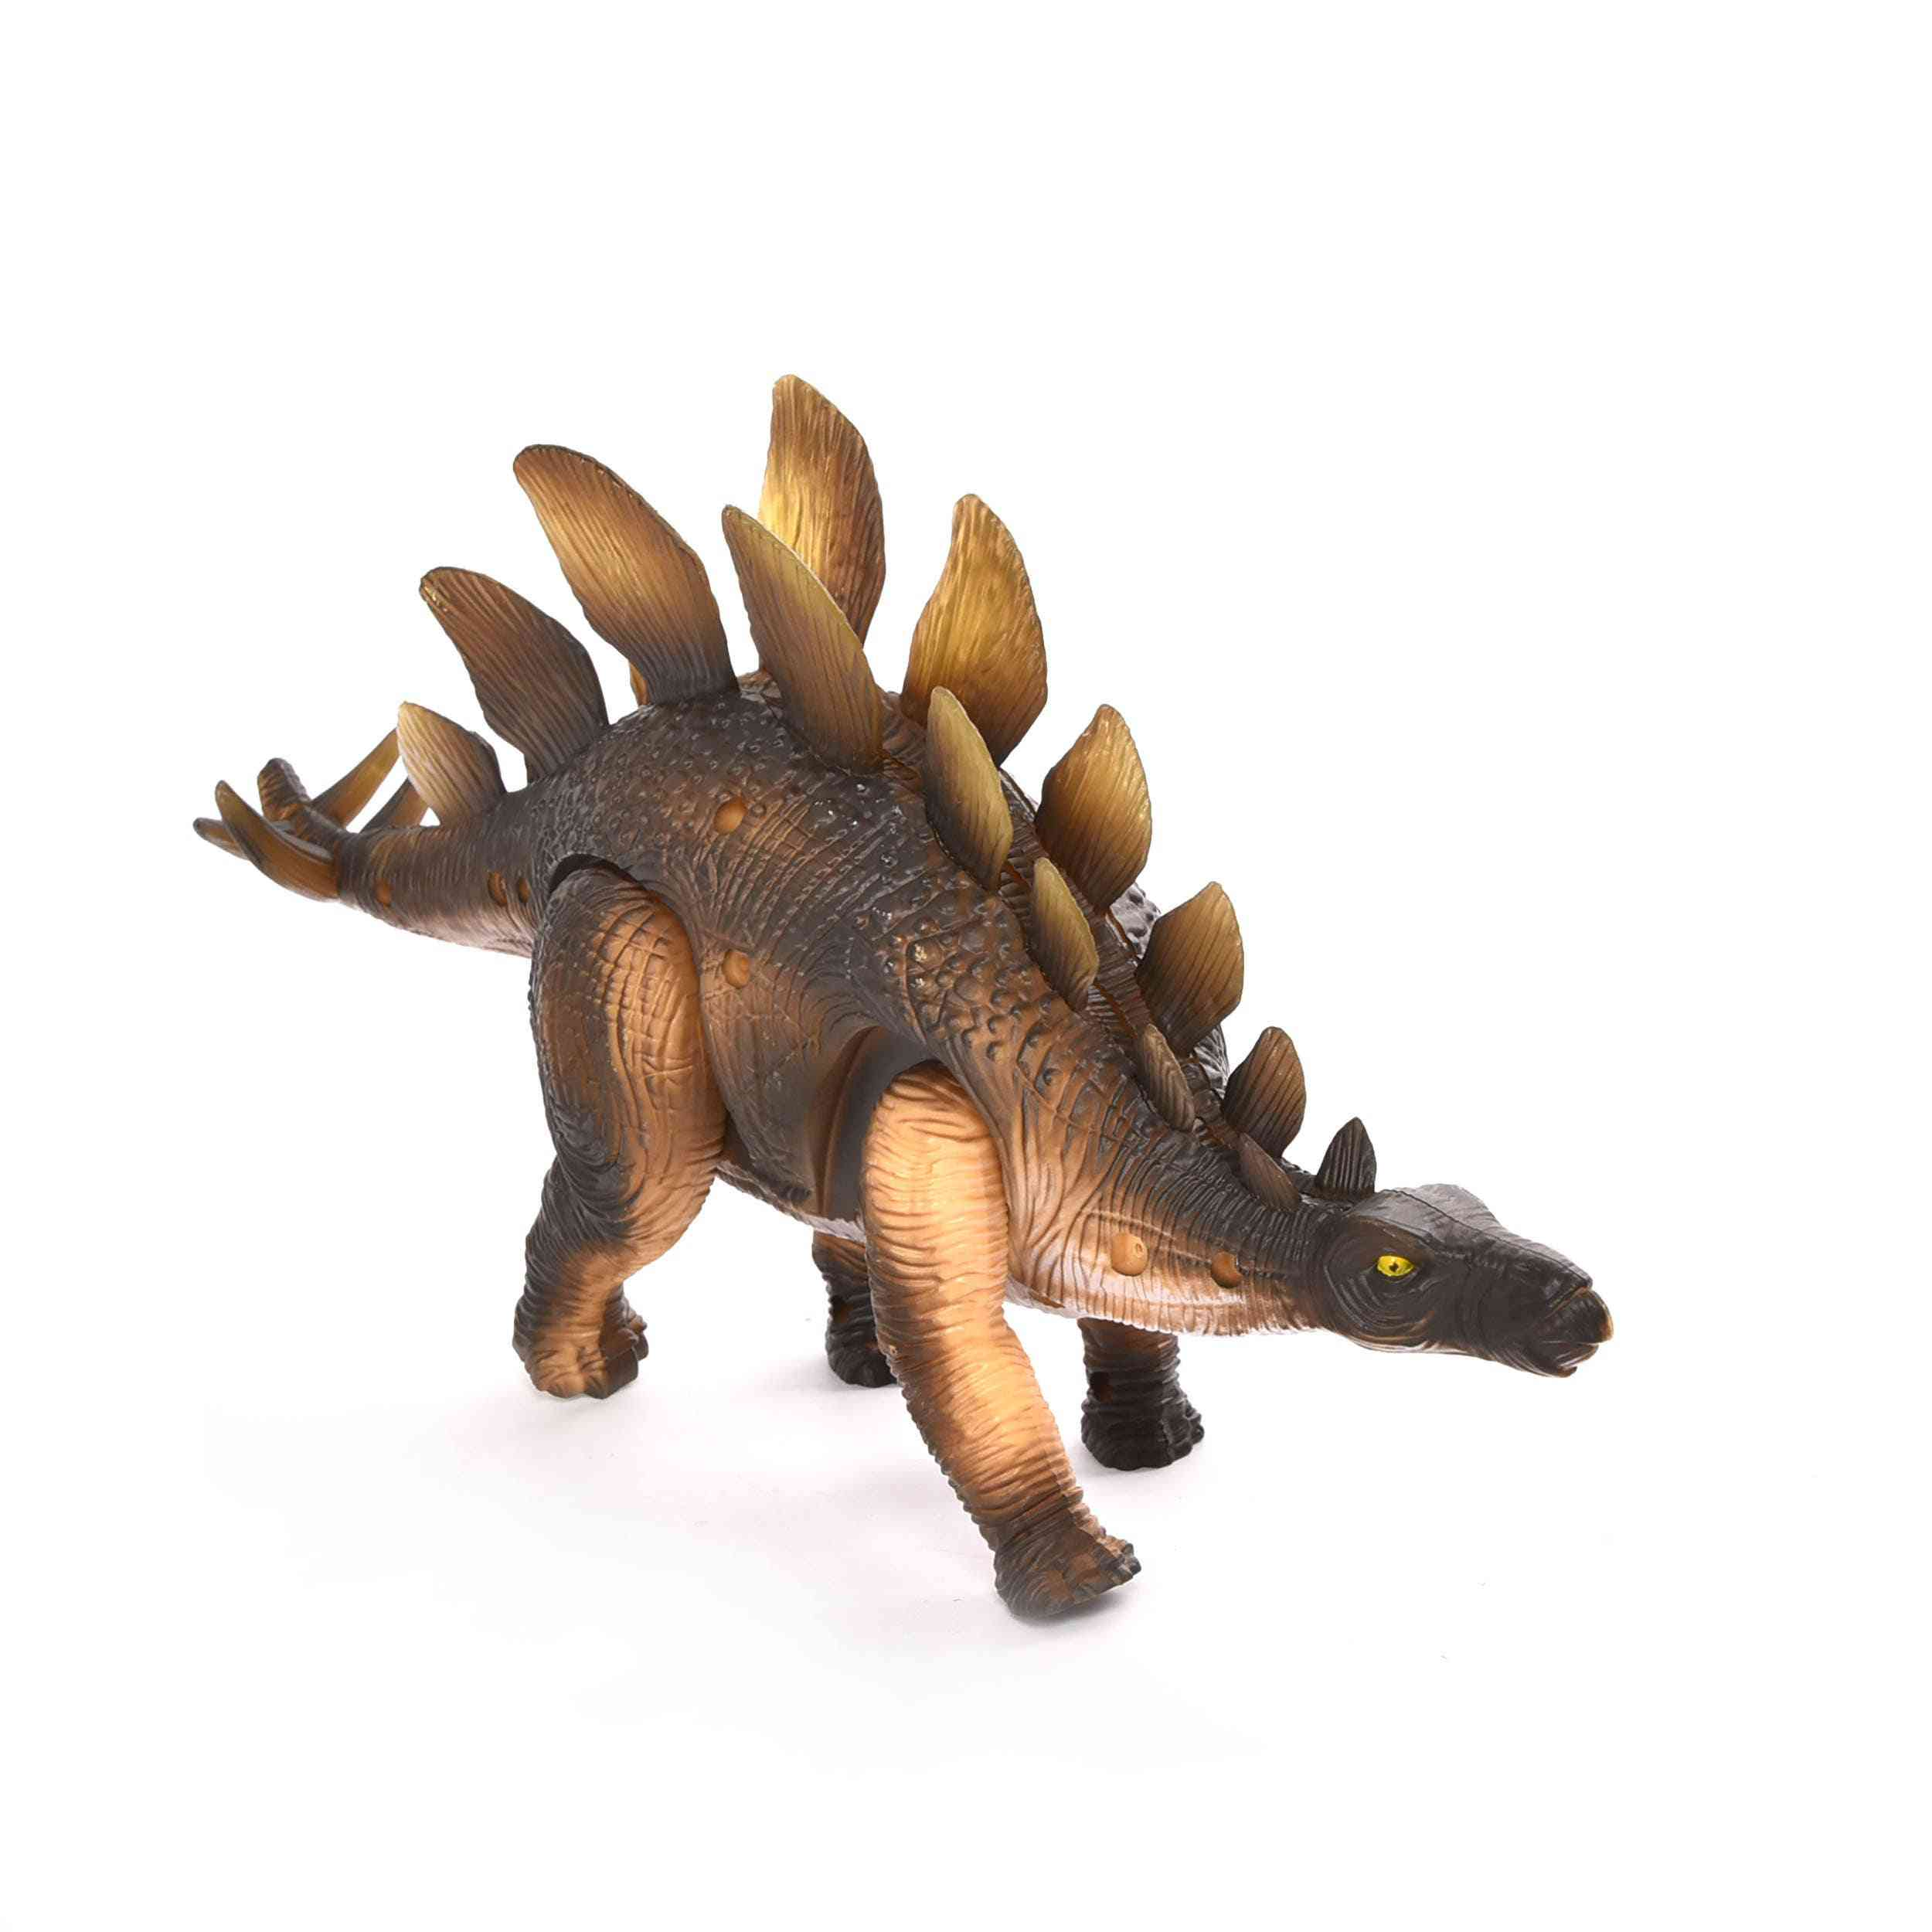 Battery Operated Walking Stegosaurus Dinosaur With Lights And Music